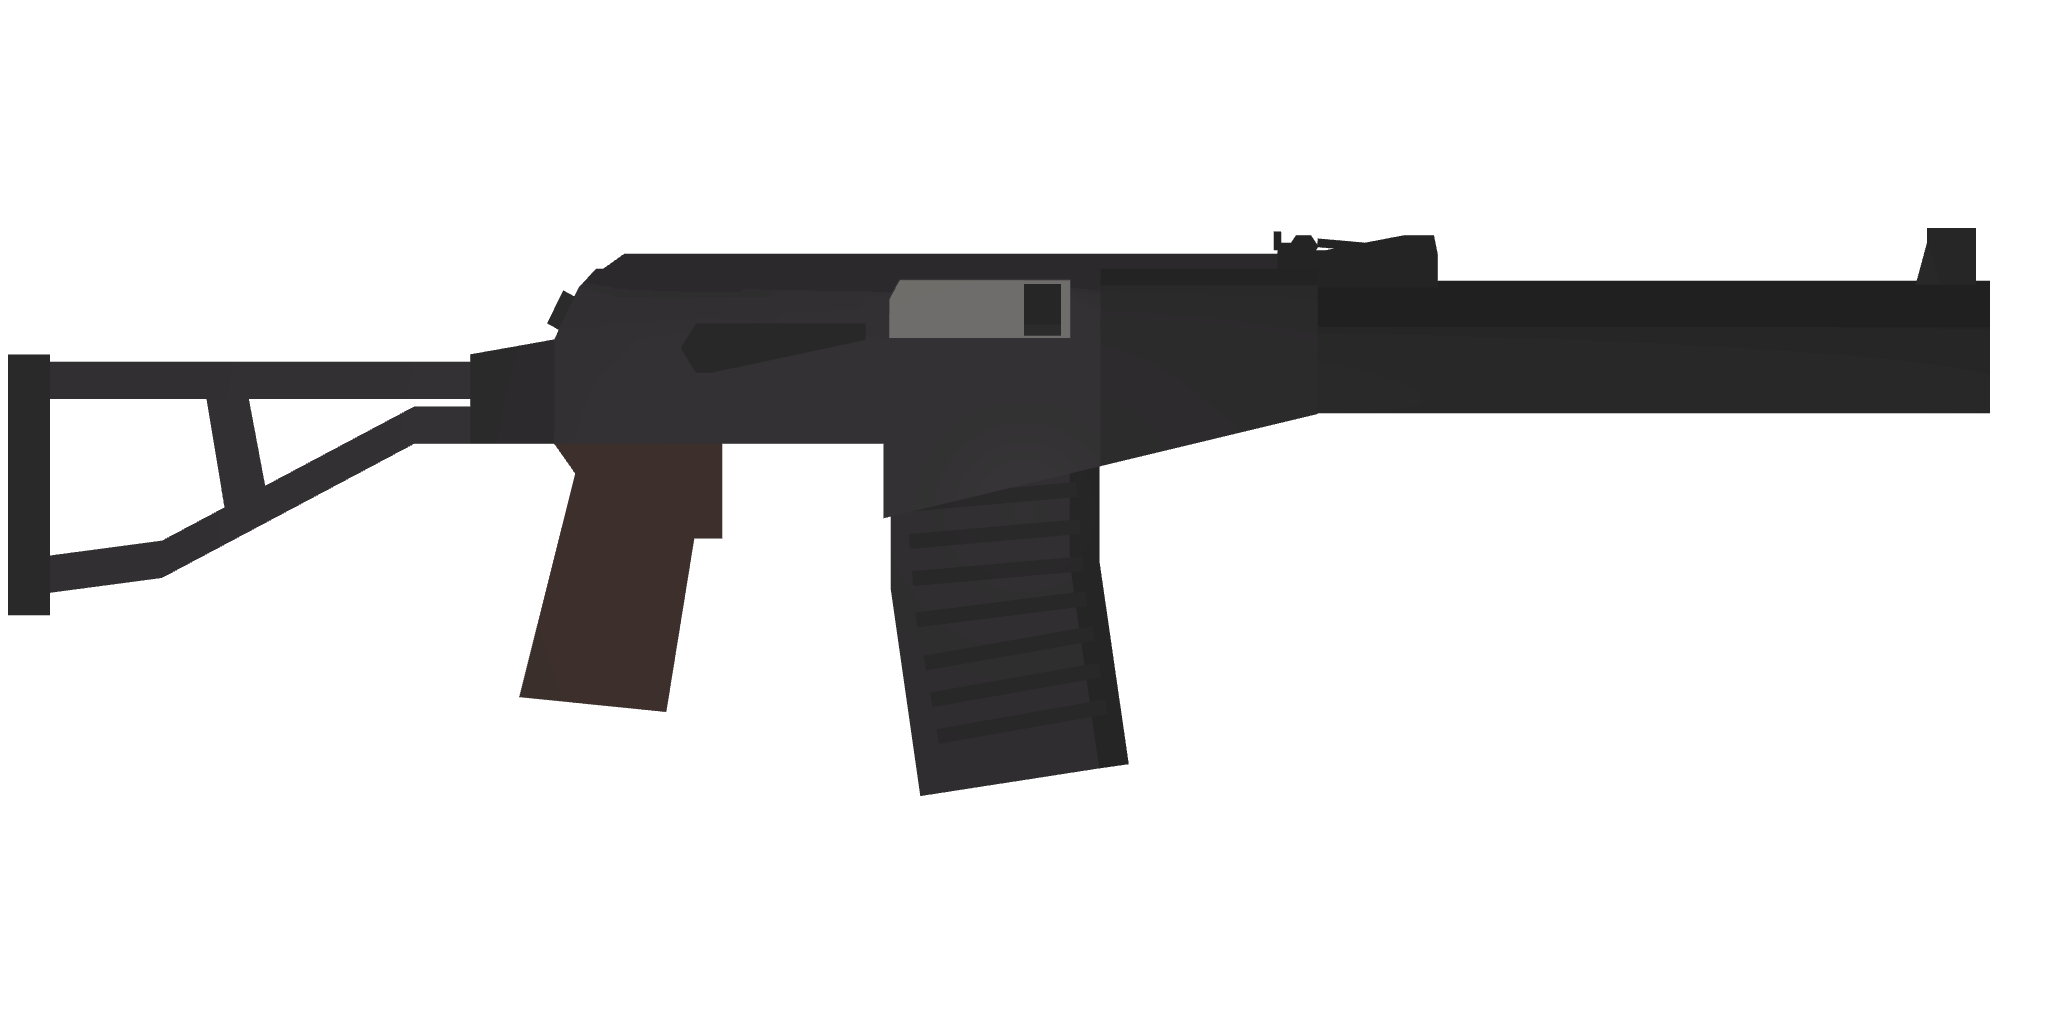 Unturned Uncreated Warfare Mods & All ID List + Attachments - Russian Weapons - 4F91EB7